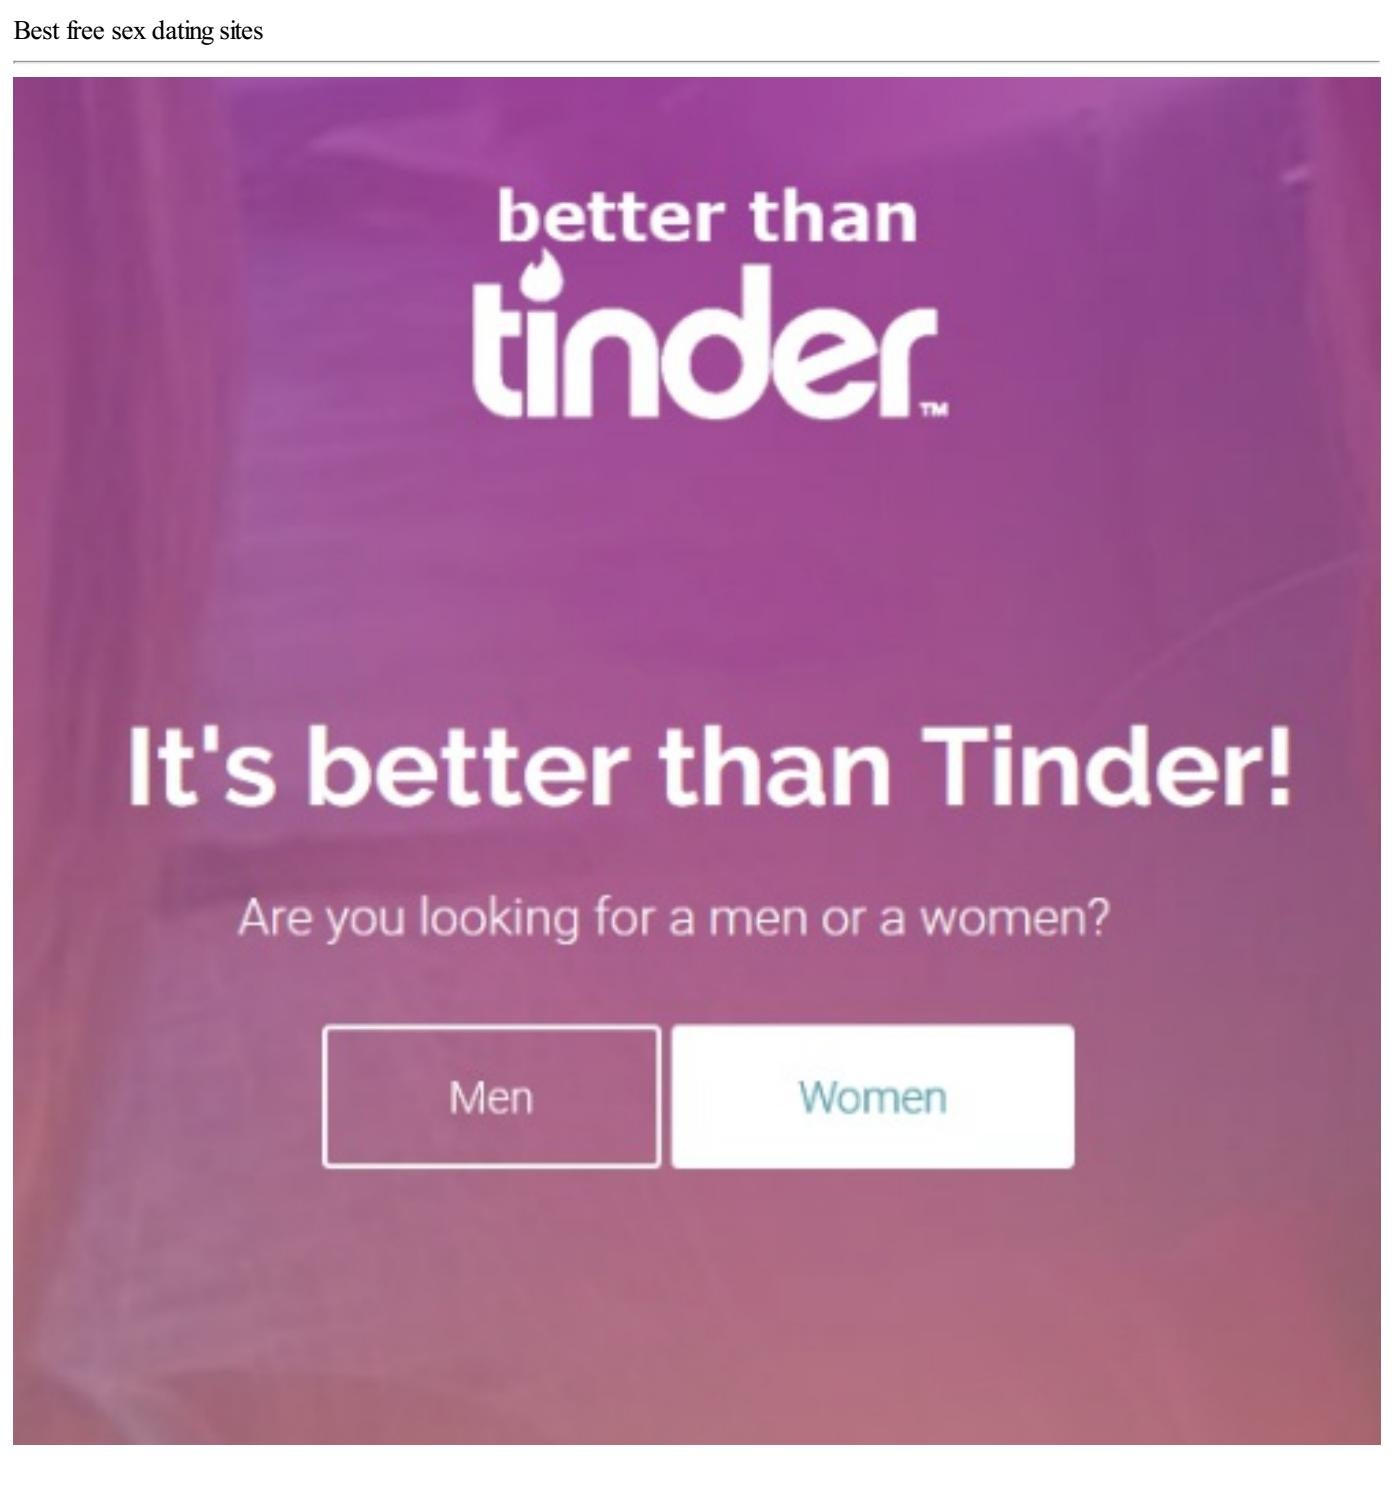 sex free dating sites